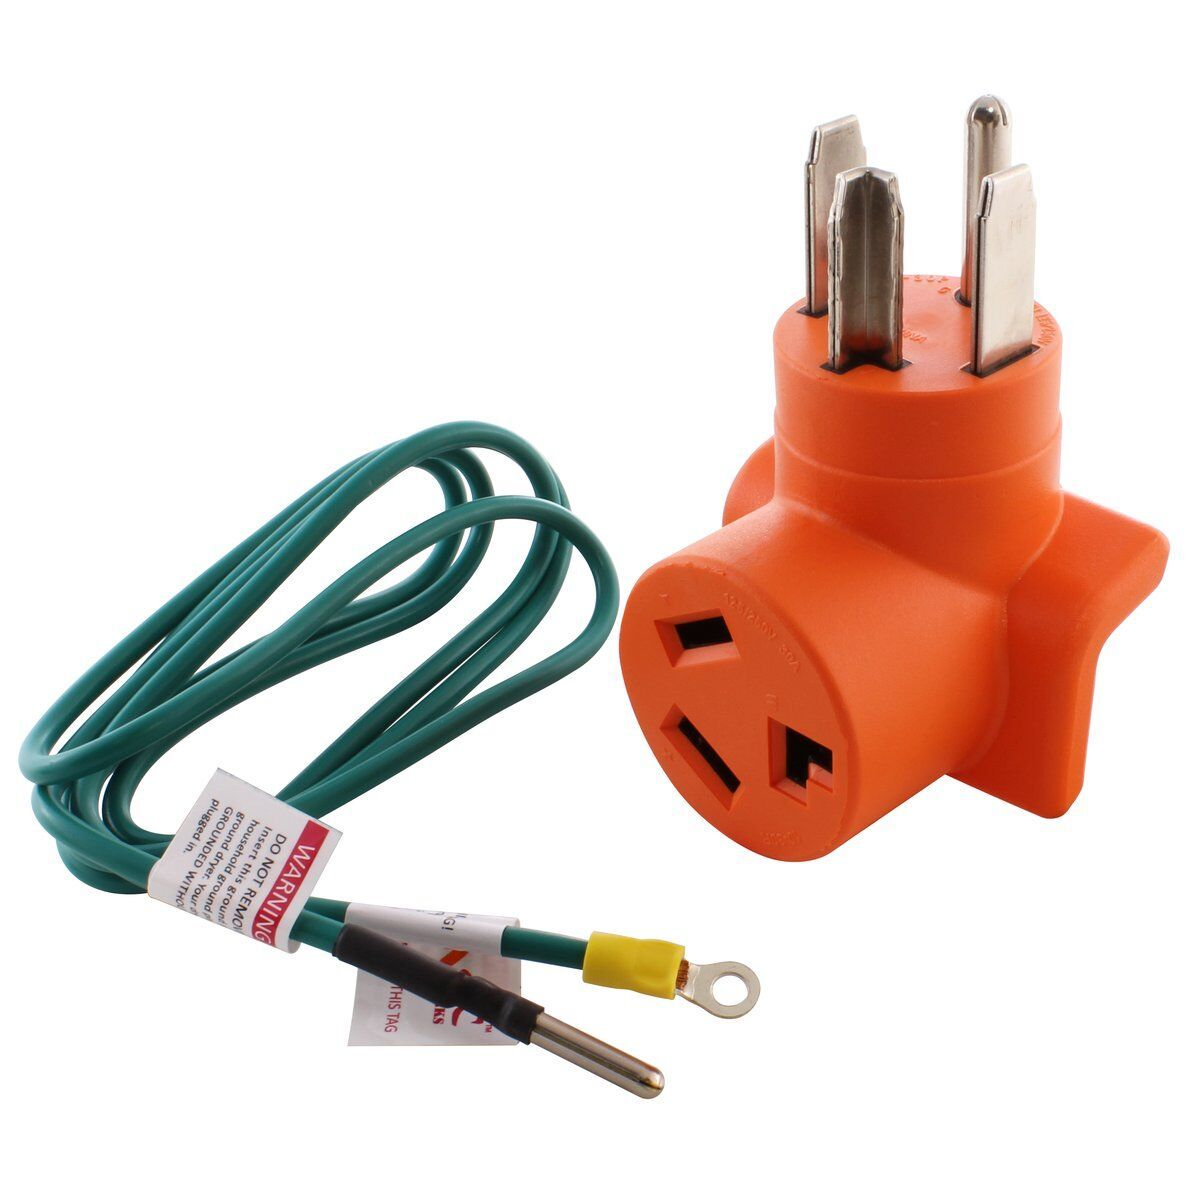 Ac Works Ad14301030 4 Prong New Dryer Plug To 3 Prong Old Dryer Socket Adapter Outlet Adapter Dryer Plug Dryer Outlet